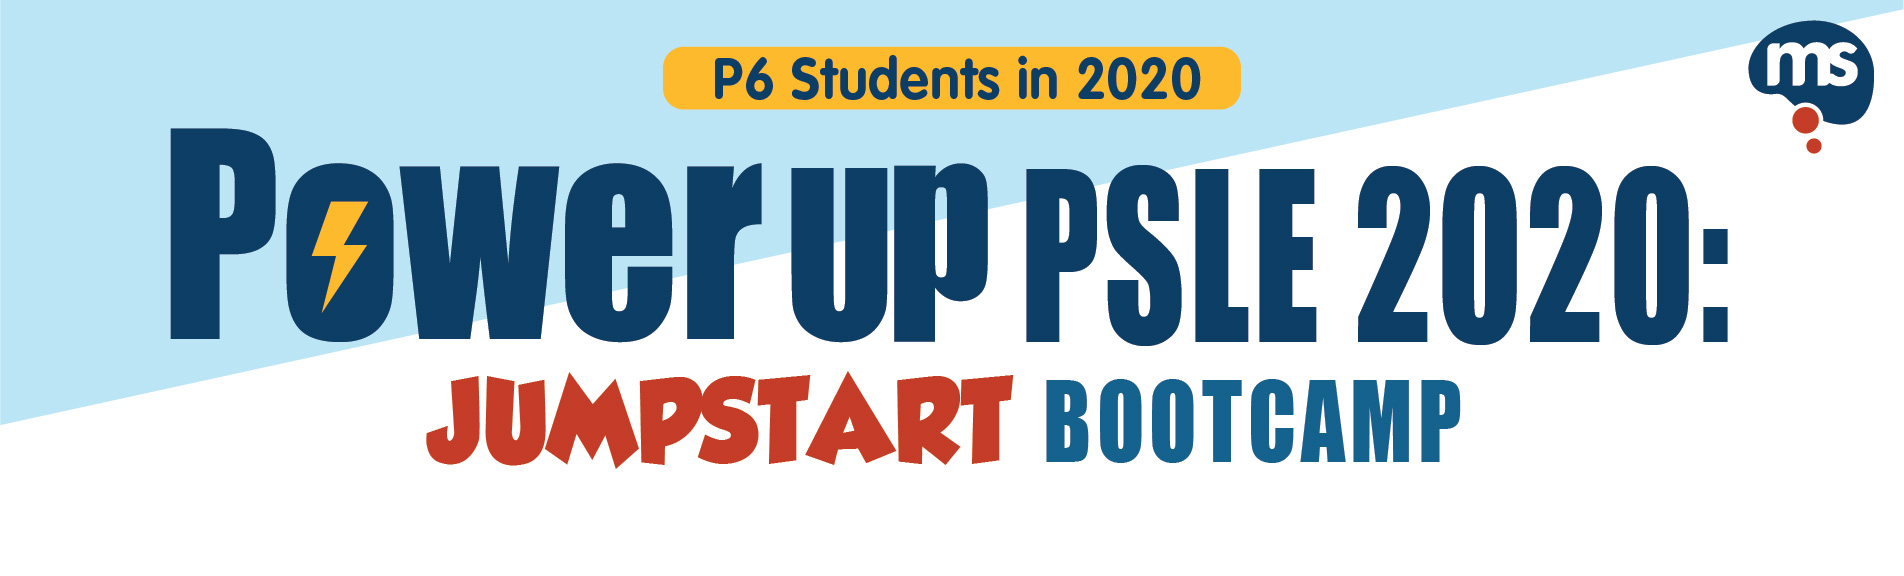 Power Up for PSLE 2020: Jumpstart Bootcamp (P6 Students in 2020)